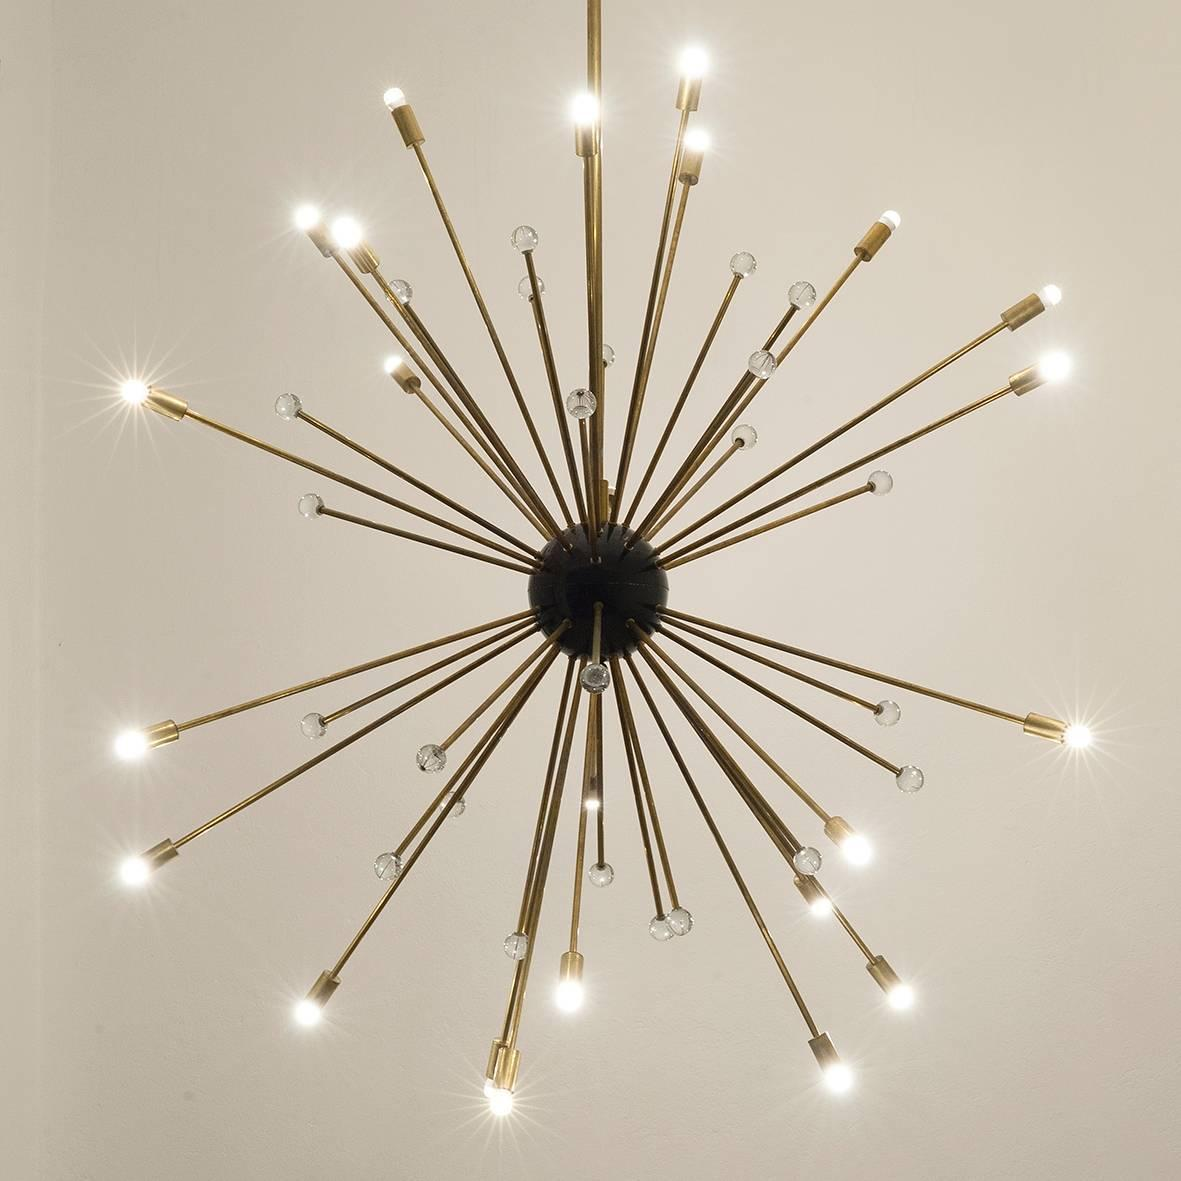 sputnik chandeliers 24 arm polished brass sputnik. Black Bedroom Furniture Sets. Home Design Ideas